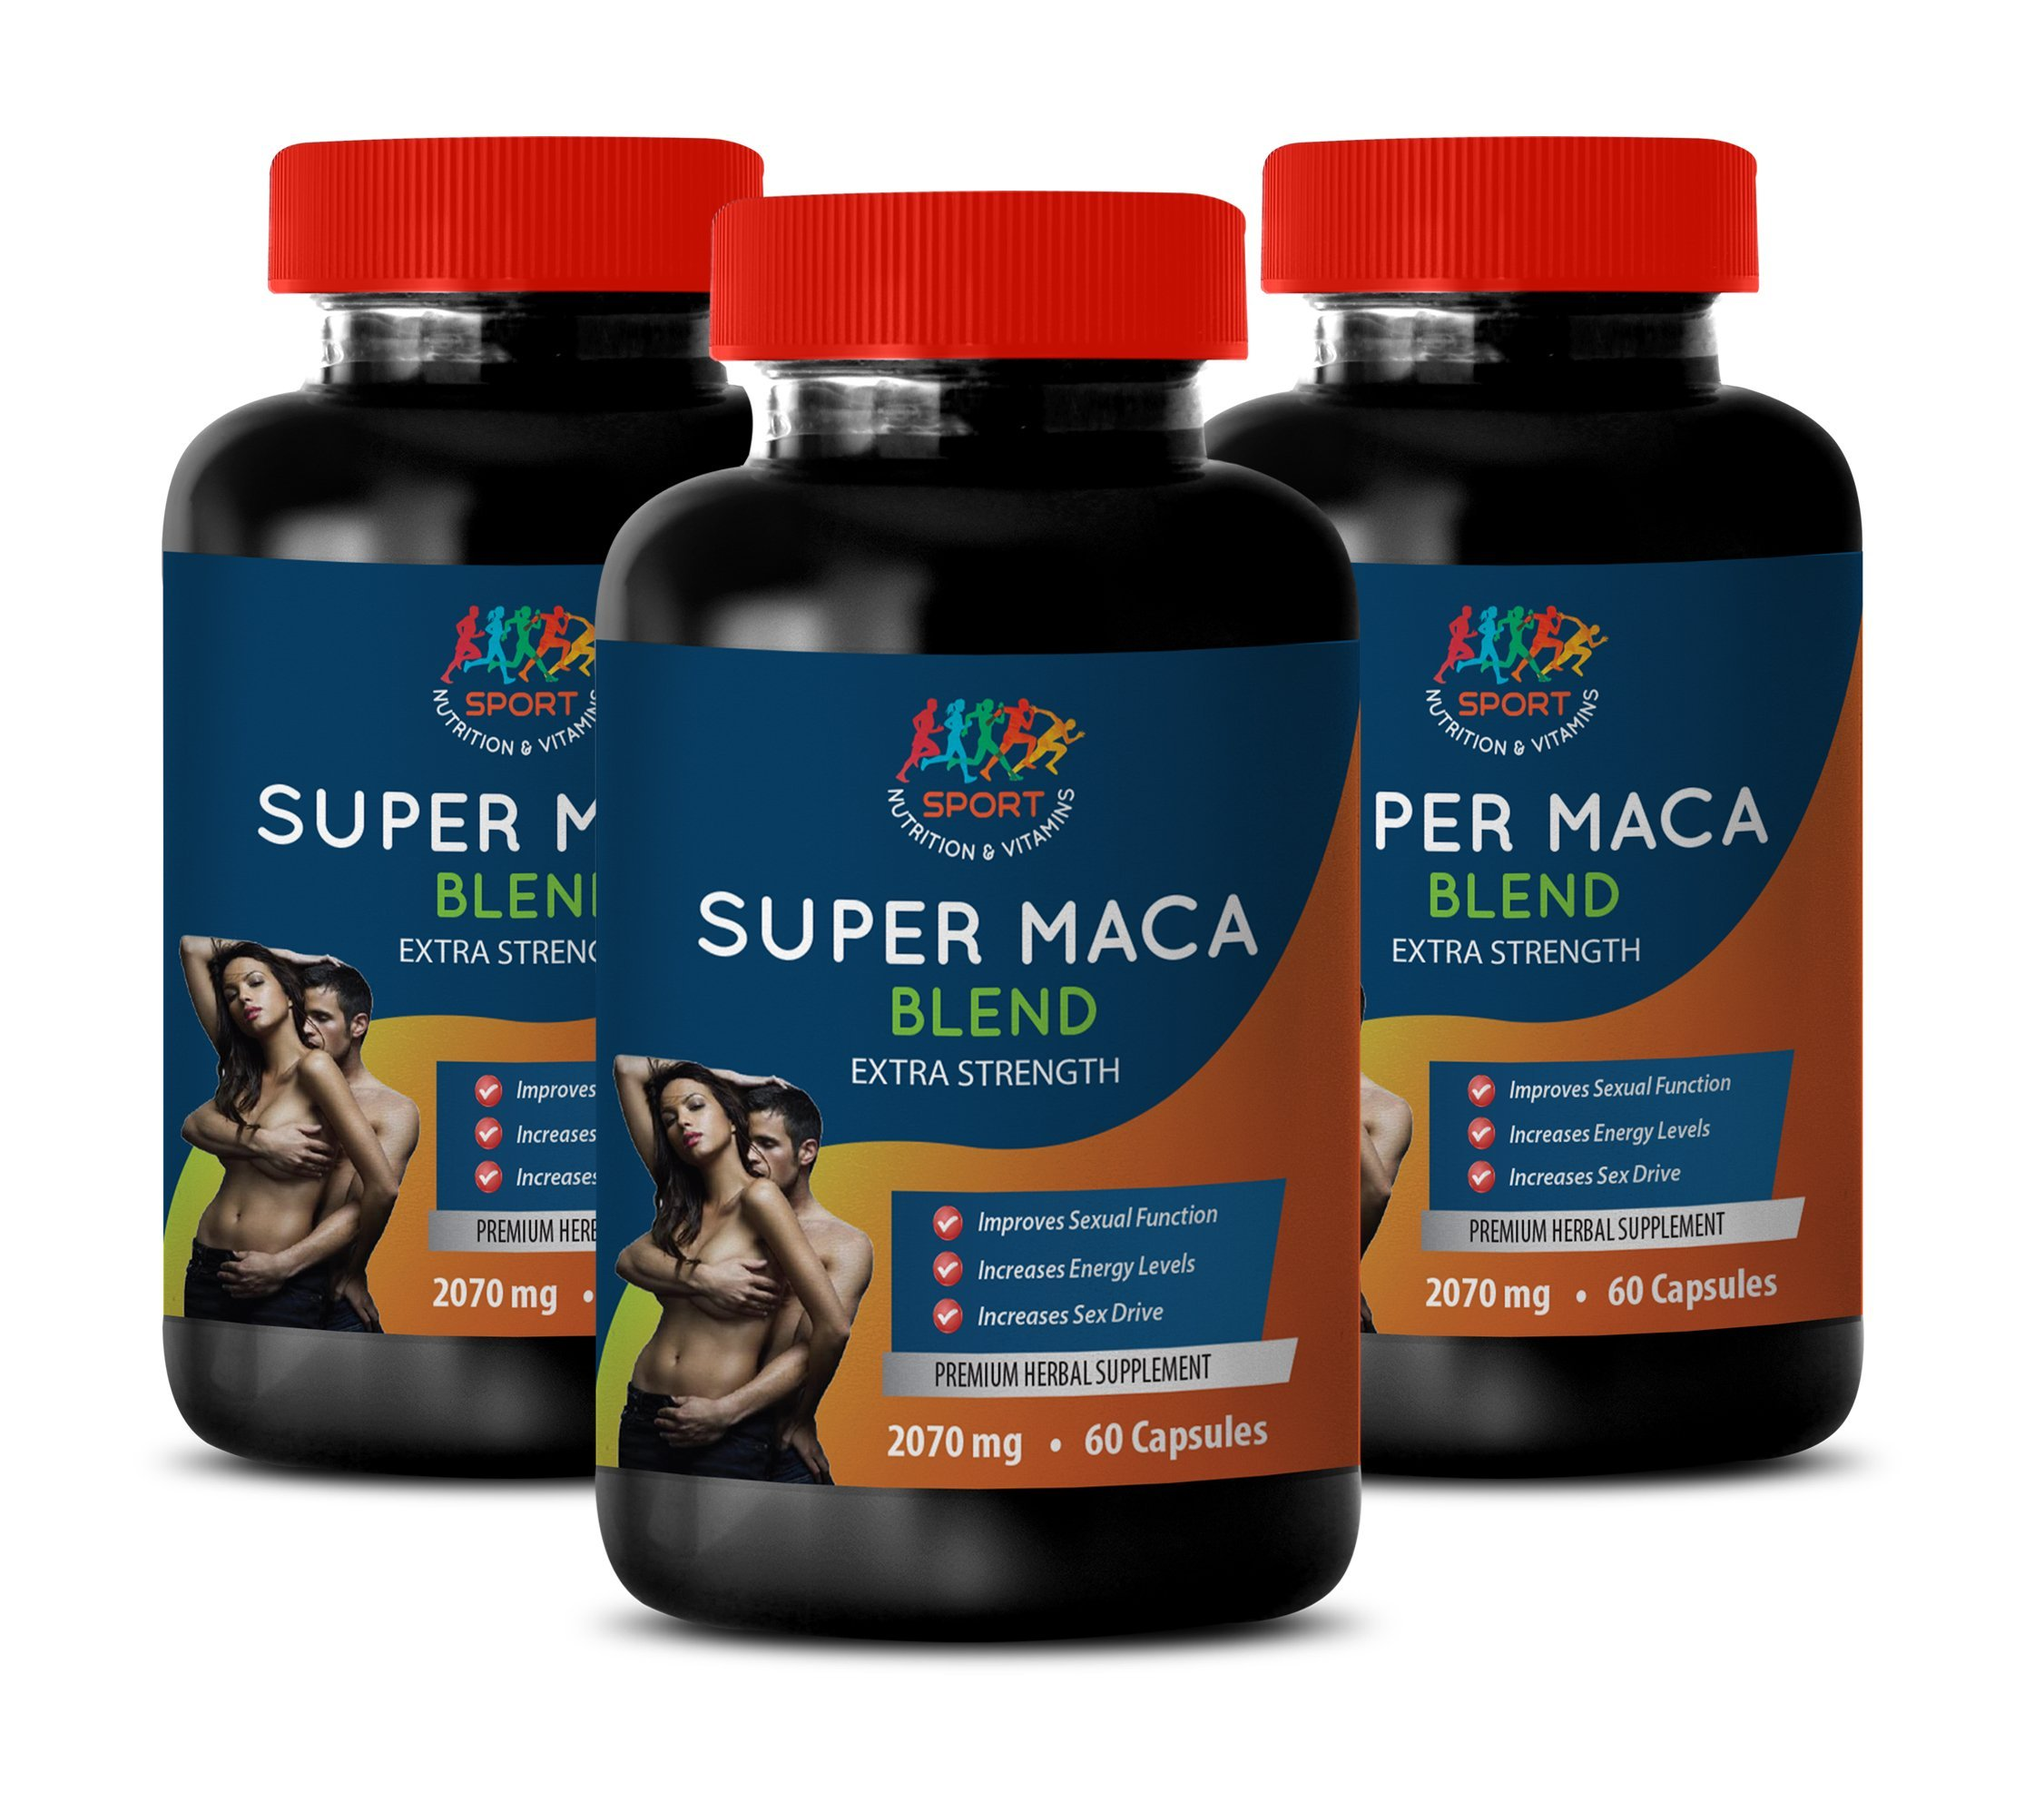 Male Testosterone Supplements - Super MACA Blend 2070 MG - Extra Strength - l-arginine and yohimbine - 3 Bottles 180 Capsules